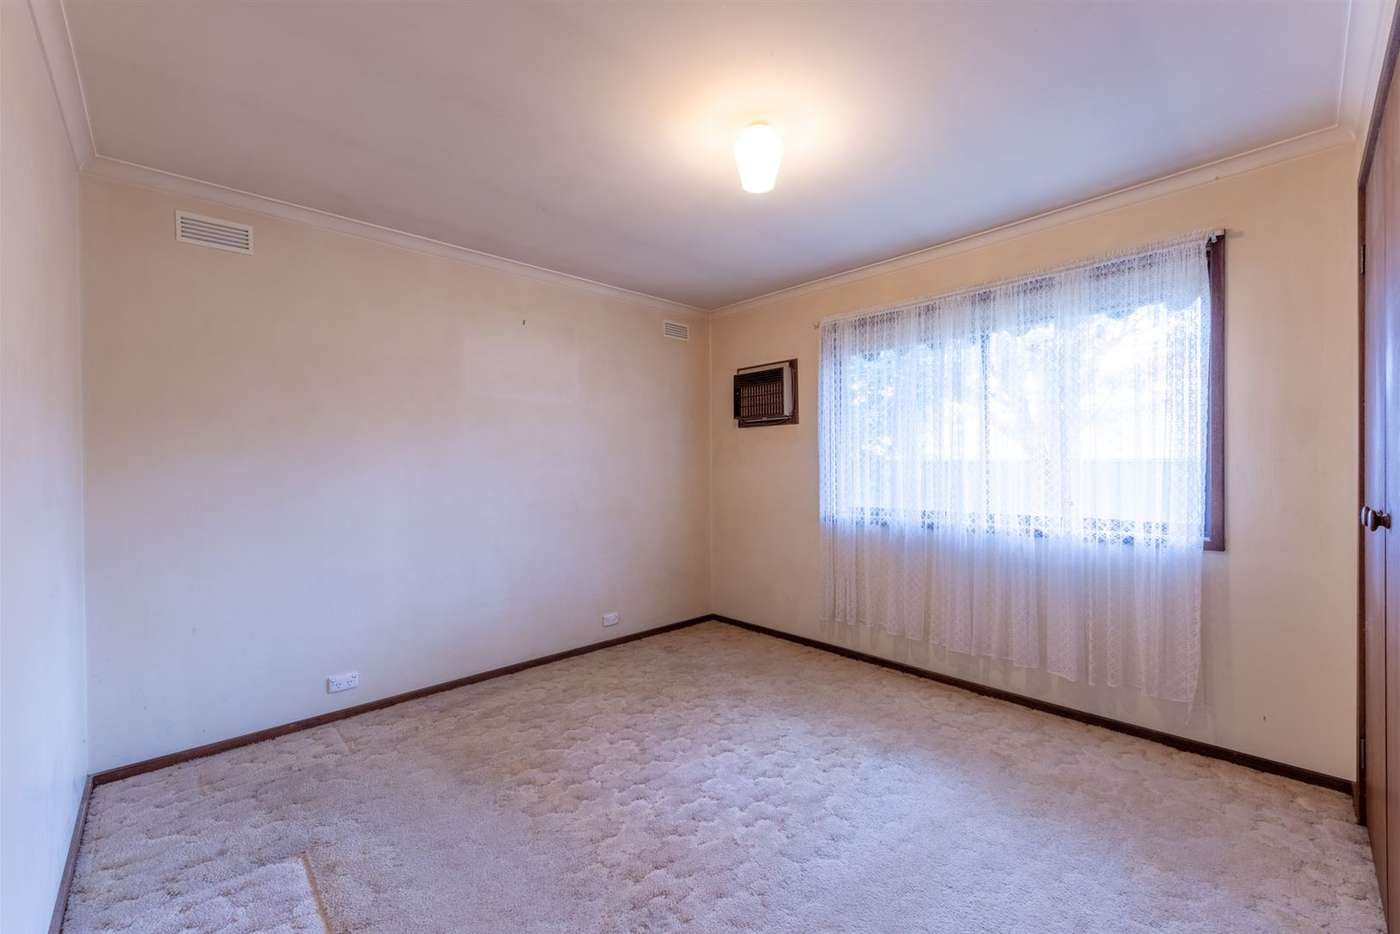 Seventh view of Homely house listing, 20 Donovan Drive, Wangaratta VIC 3677